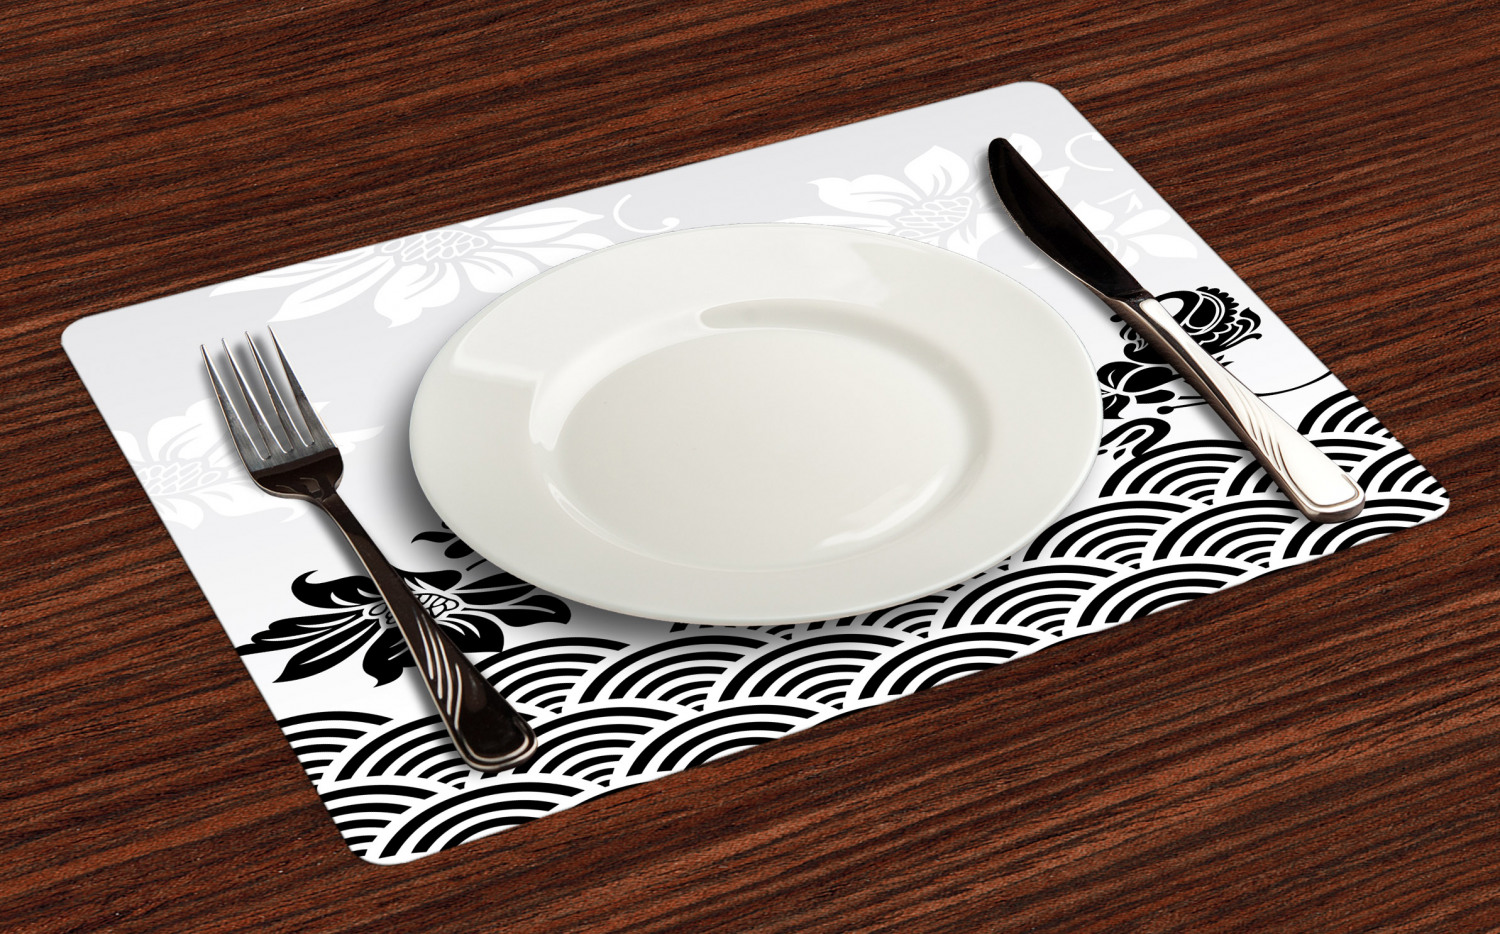 Ambesonne-Flower-Pattern-Placemat-Set-of-4-Fabric-Place-Mats-for-Table-Decor thumbnail 37